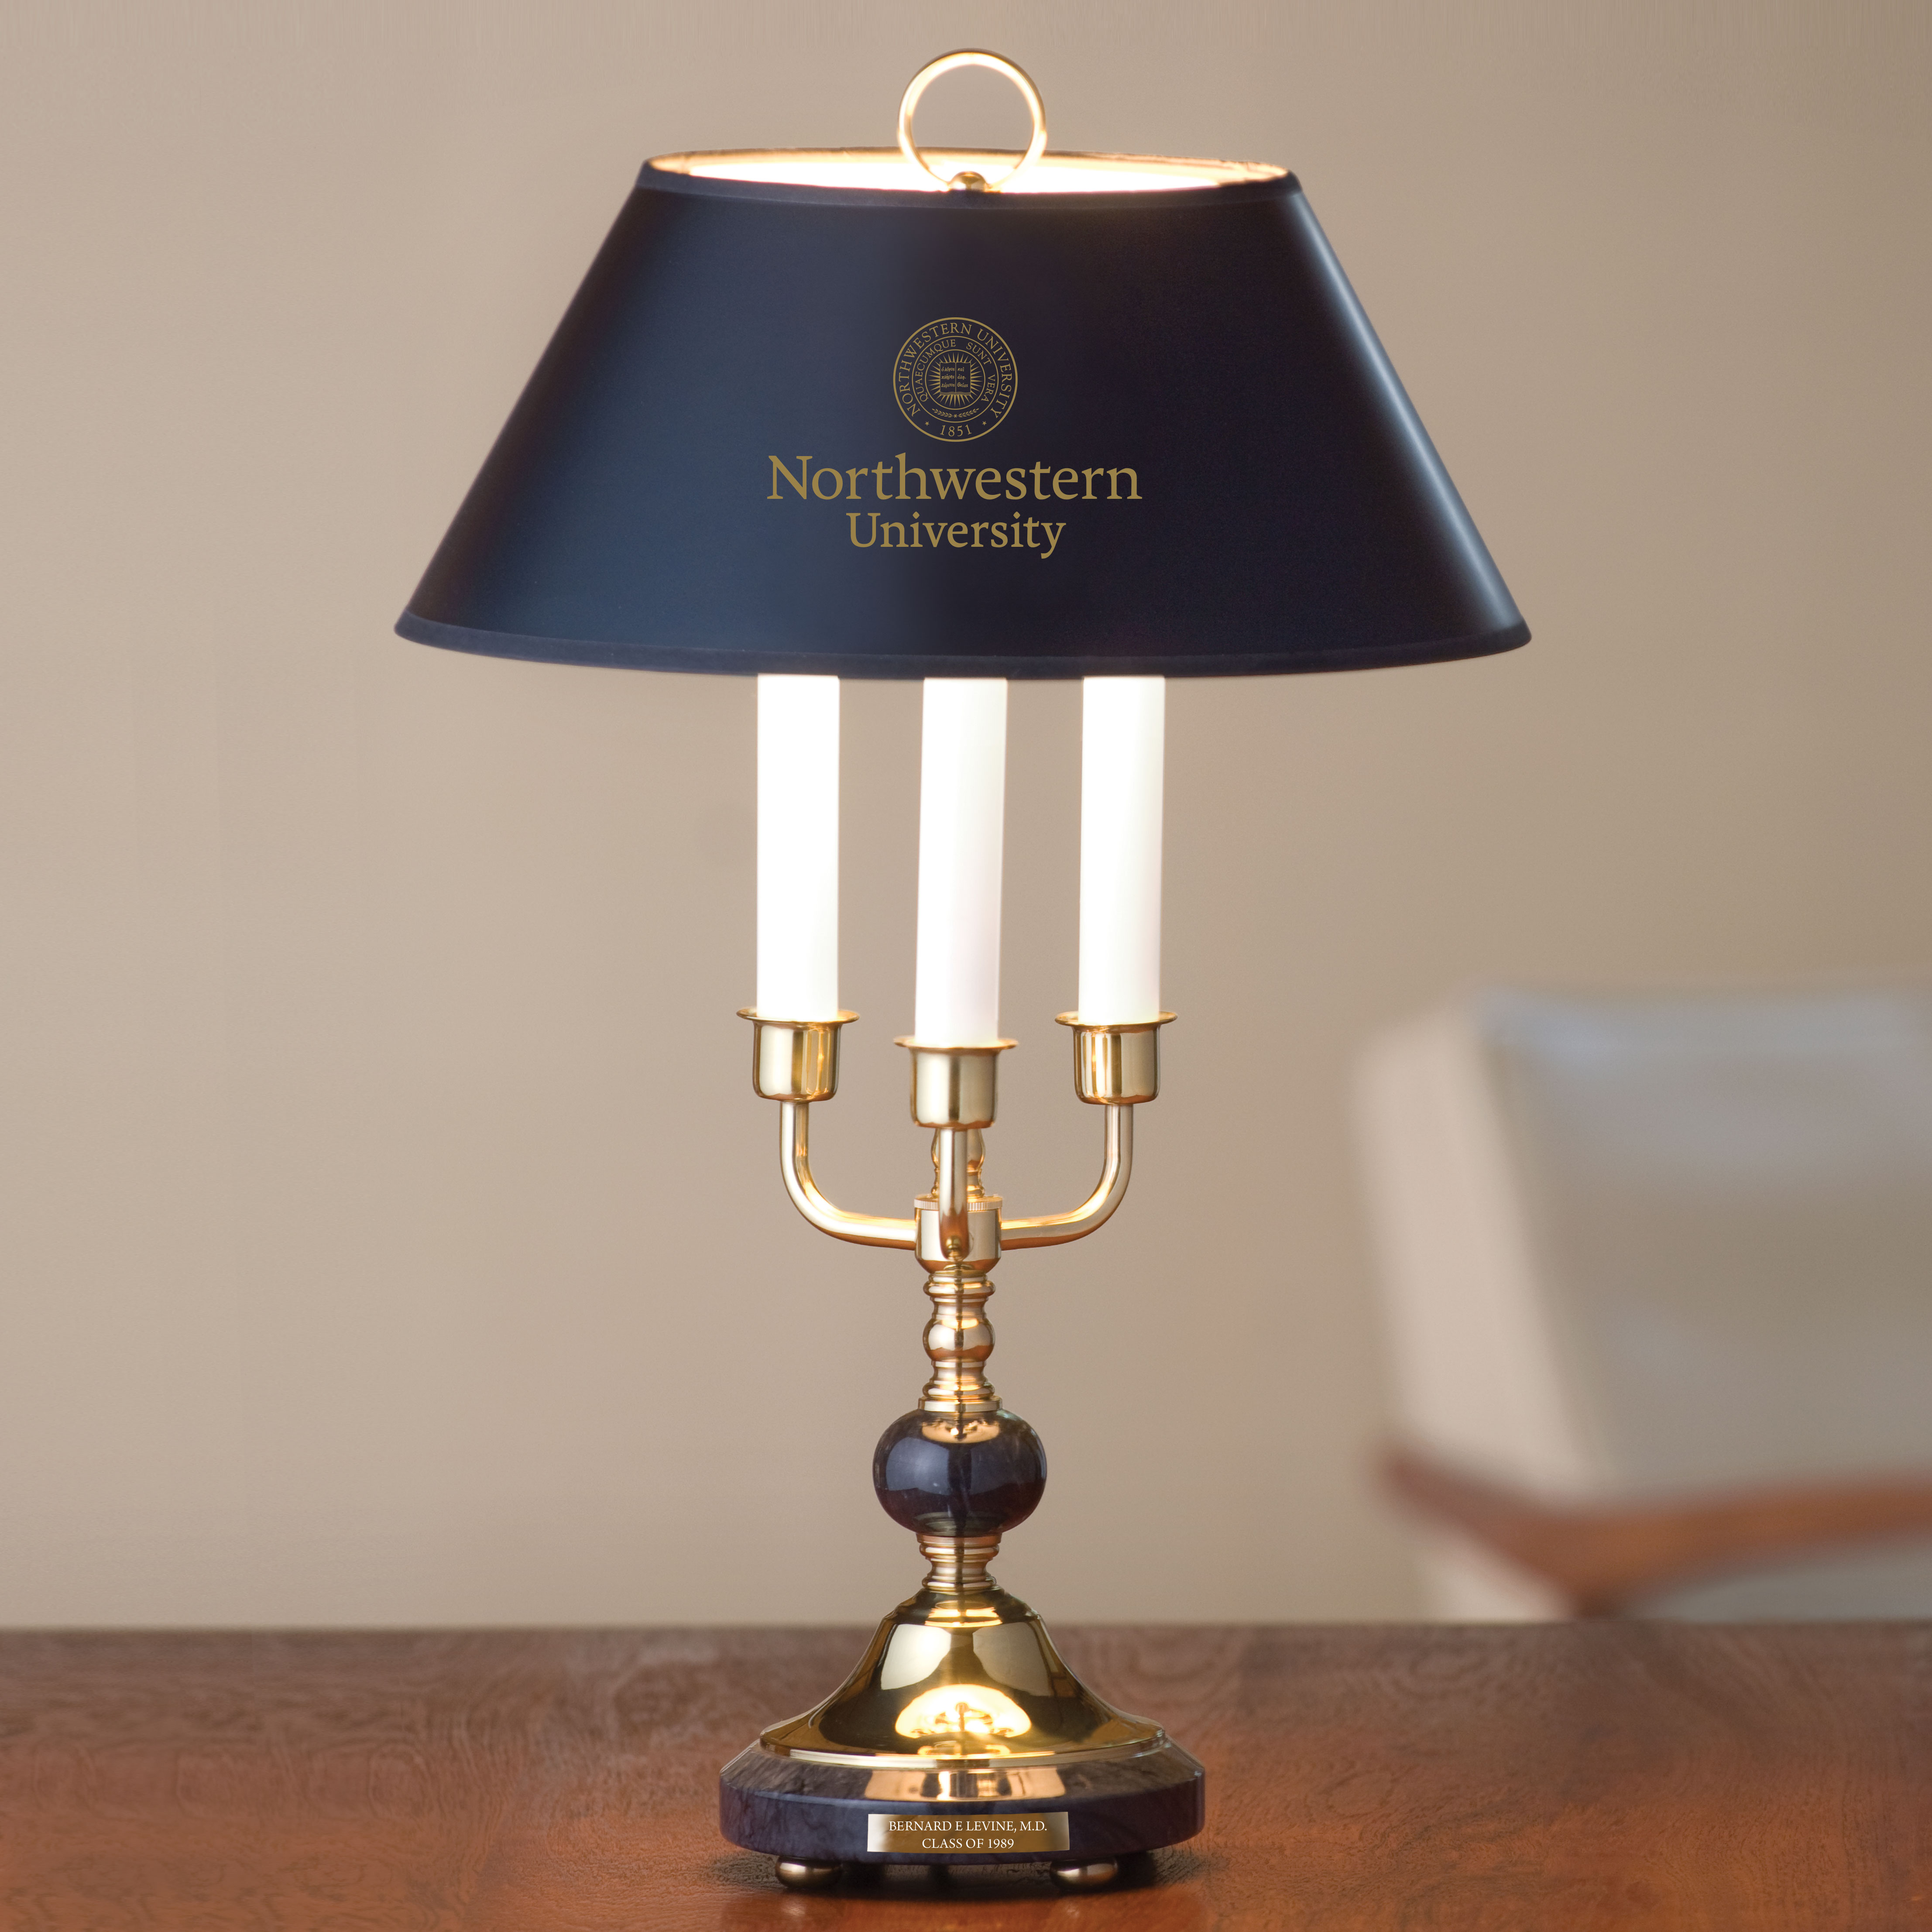 Traditional Northwestern Lamp In Brass And Marble At M Lahart